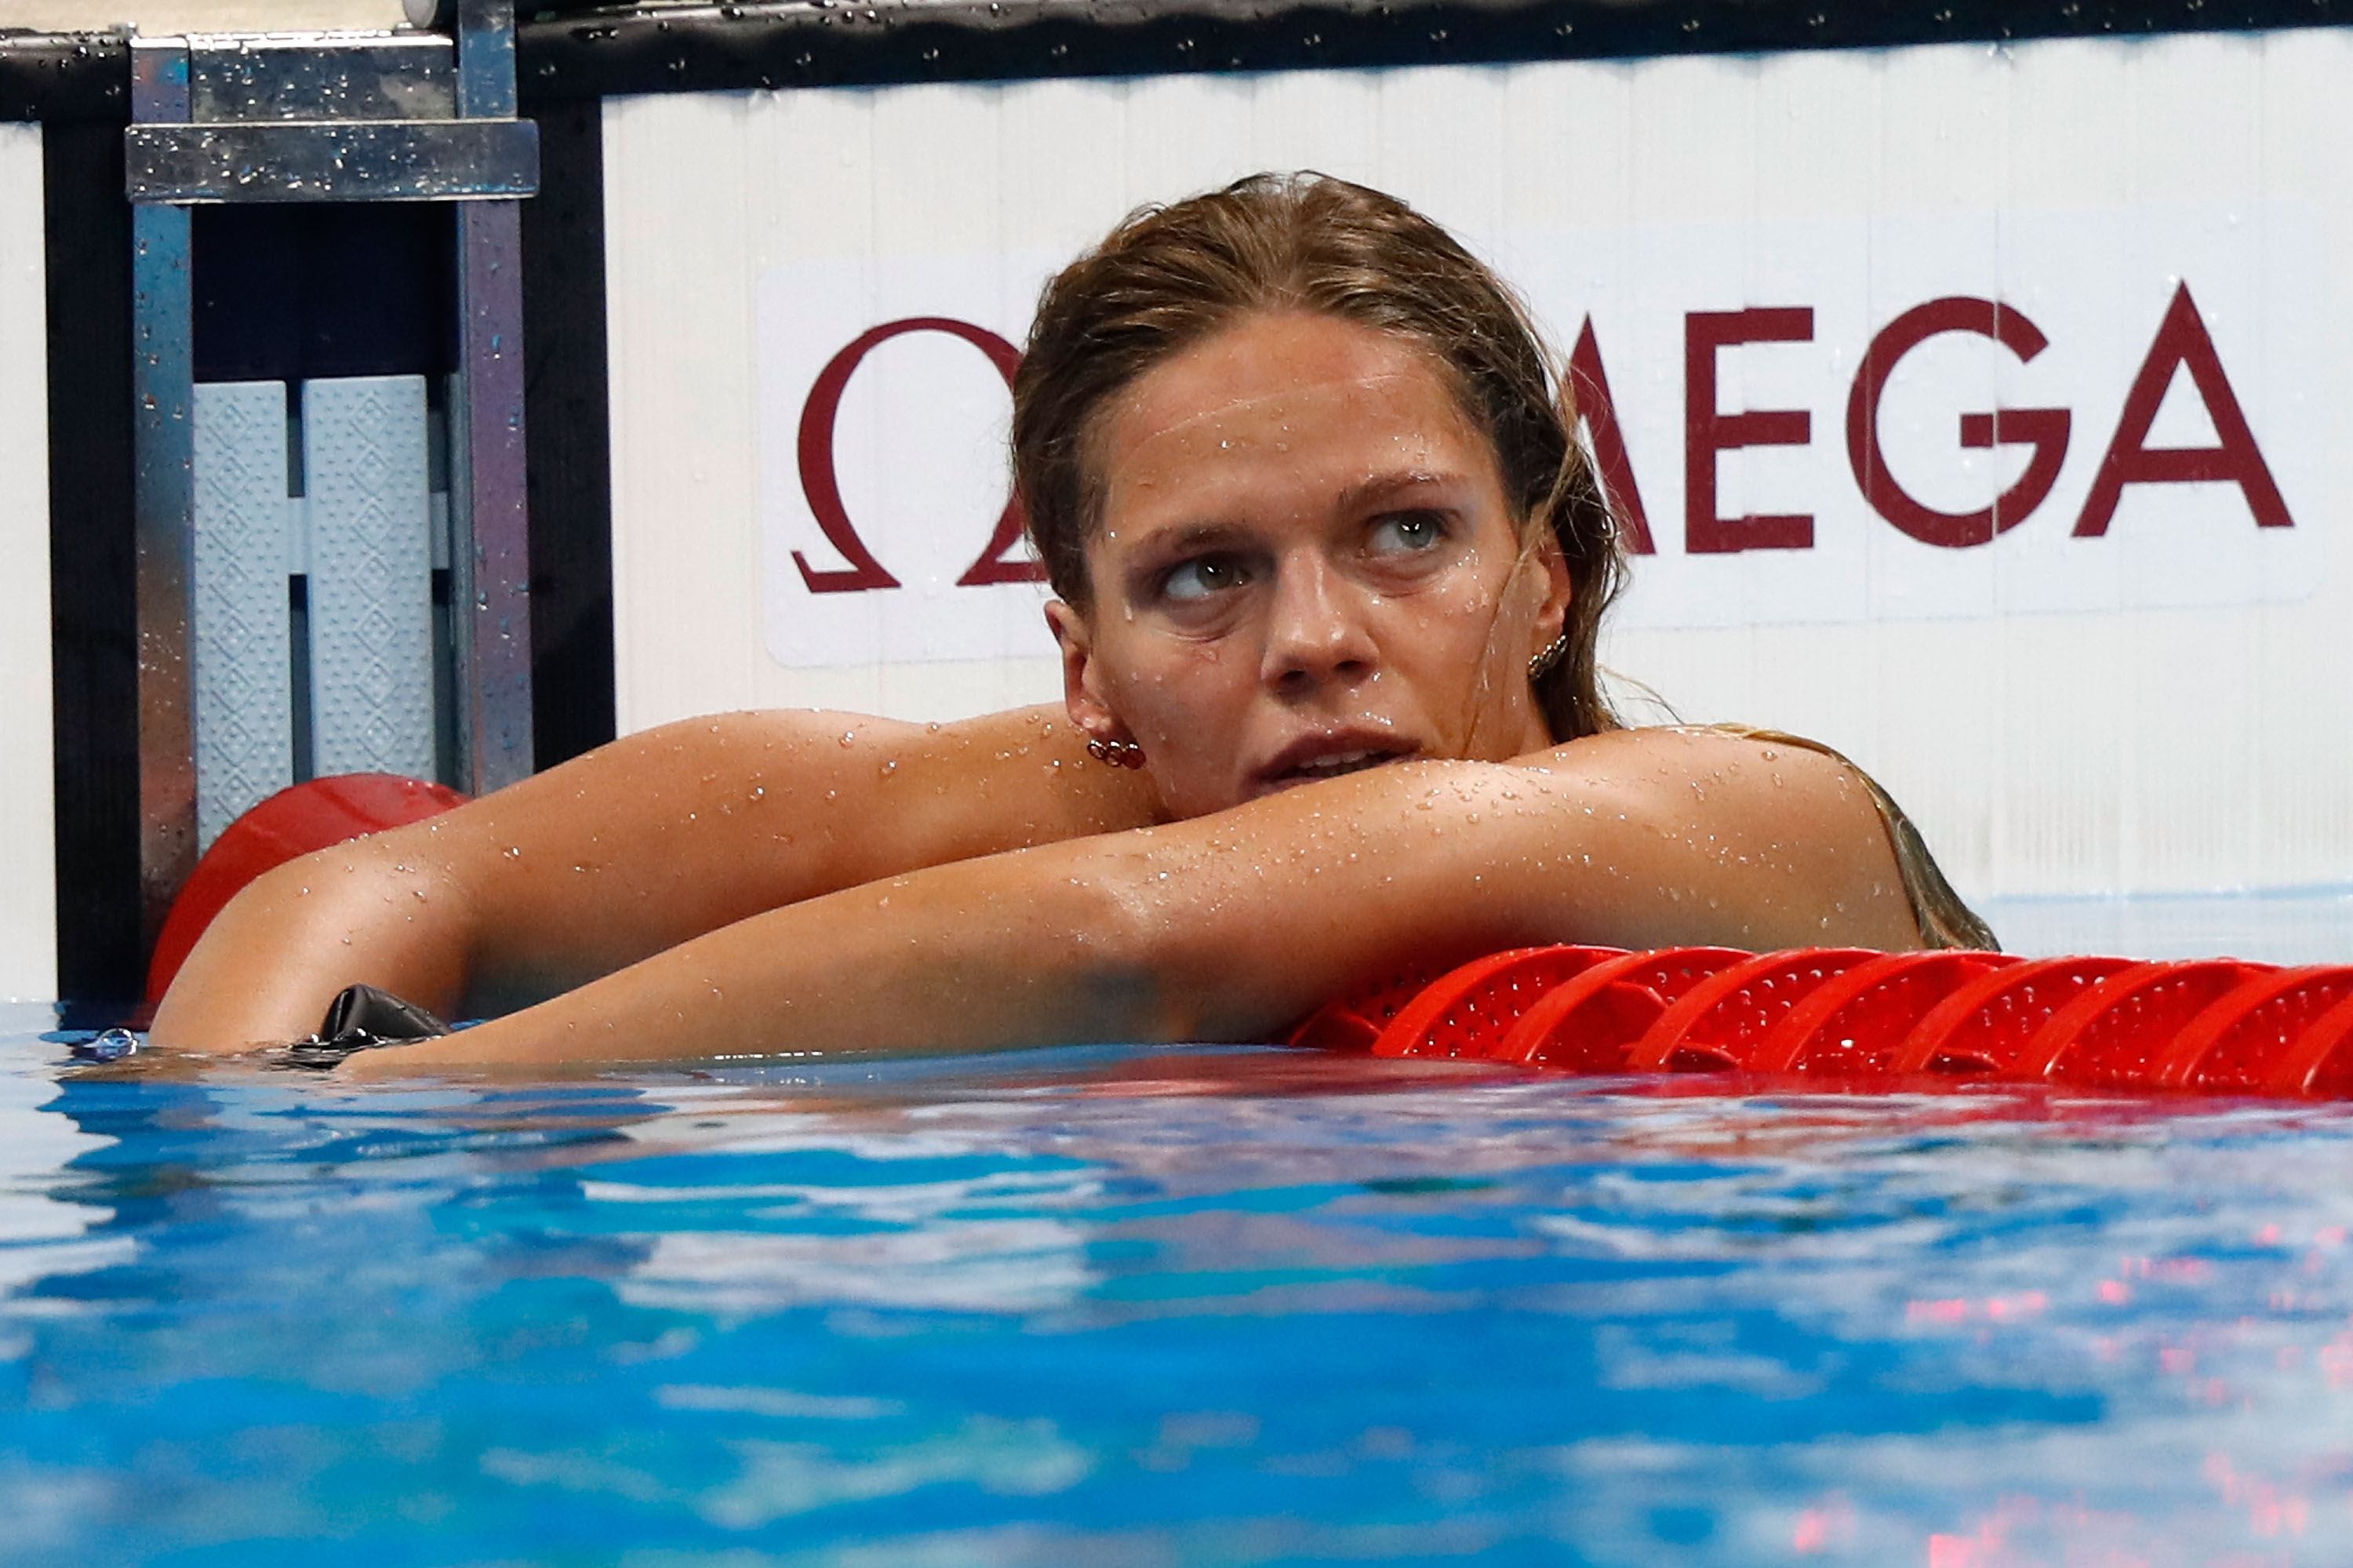 Yulia Efimova of Russia reacts after the Women's 100m Breaststroke final on Day 3 of the Rio 2016 Olympic Games at the Olympic Aquatics Stadium on August 8, 2016 in Rio de Janeiro, Brazil.